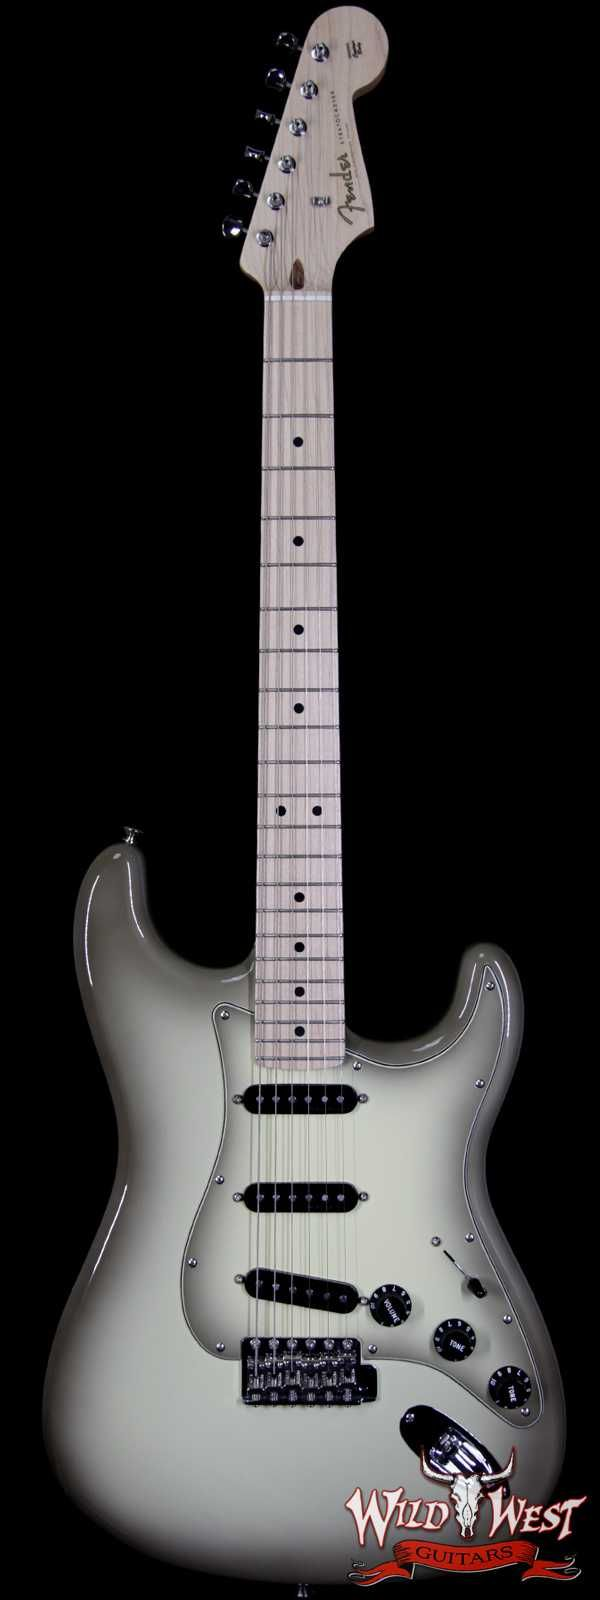 128 Best Guitars Images On Pinterest Musicals And Bass Fender Jaguar Guitar Wiring Diagram Hecho 2008 Custom Shop Eric Clapton 10th Anniversary Of Crossroads Stratocaster Antigua 80 100